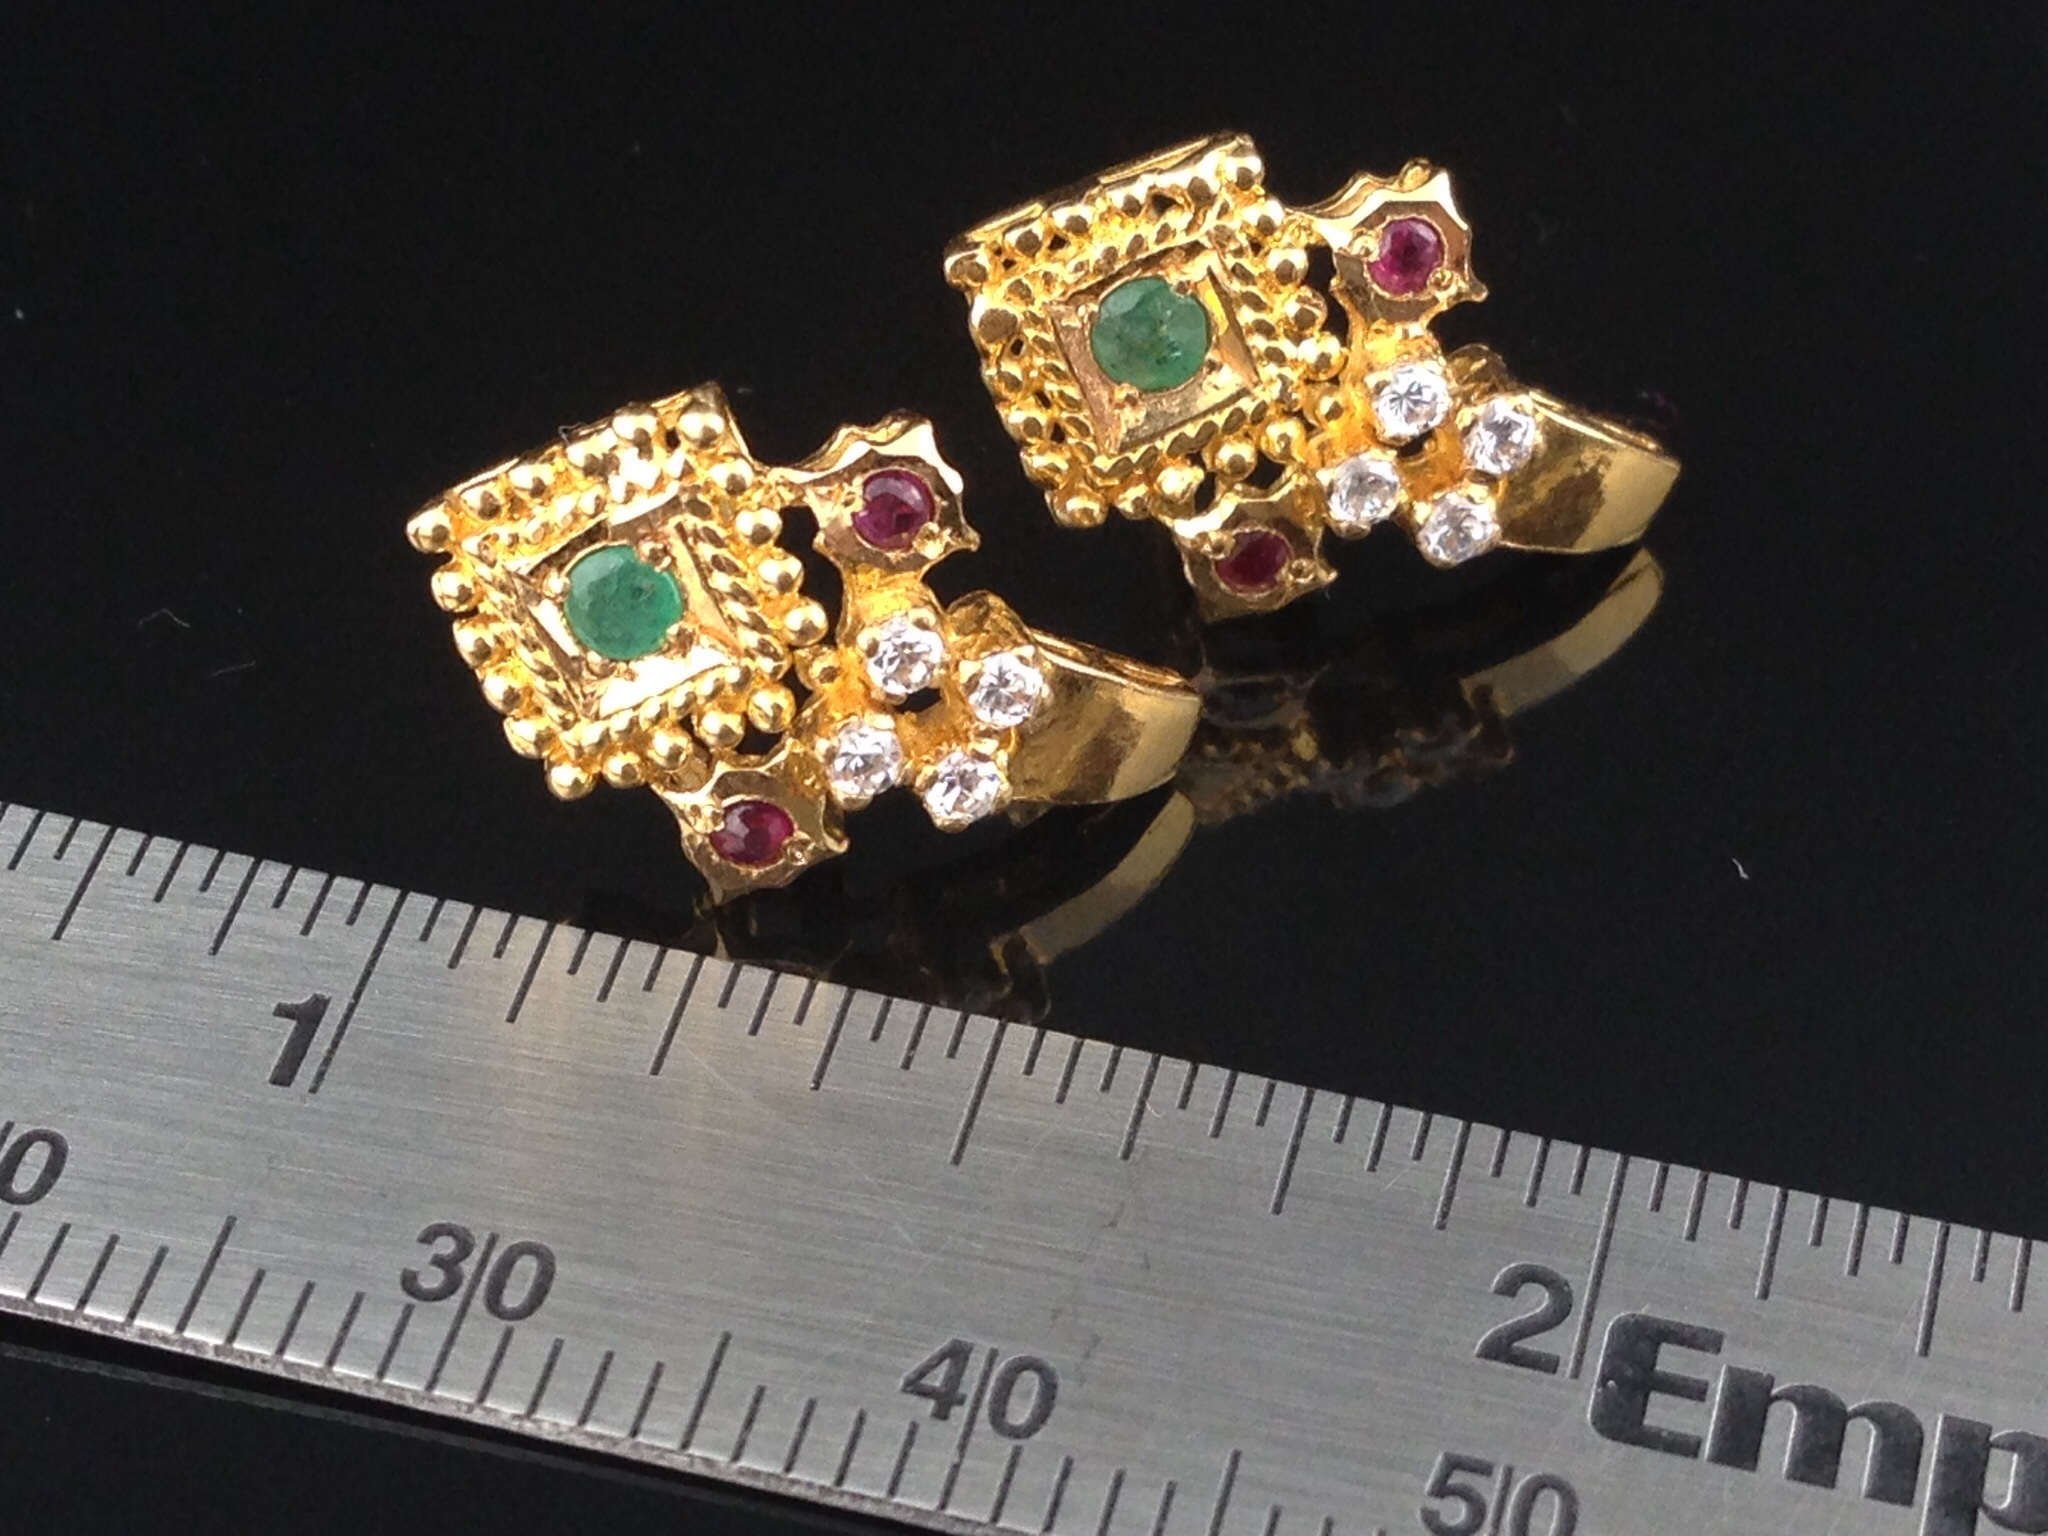 gold earrings products w textured yellow gm petal accents flowers four mm ball stud